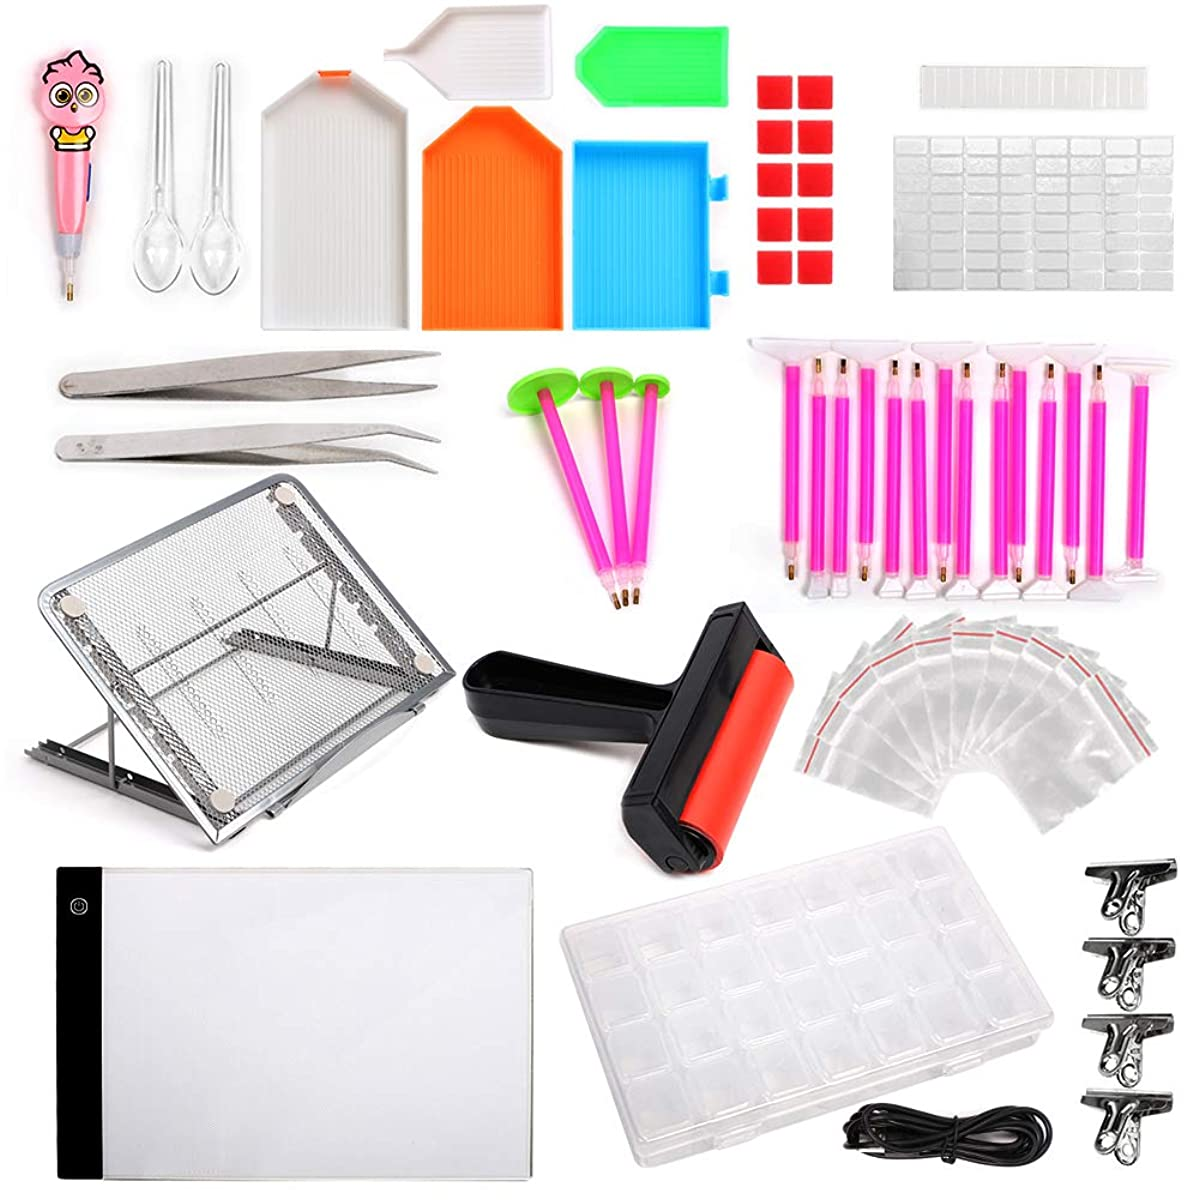 LAMPTOP 58-Pack 5D Diamond Painting Tools and Accessories Kits with Dimmable A4 LED Light Pad Board Adjustable Tablet Stand Roller Pens Cross Stitch and Embroidery Box for DIY Art Craft